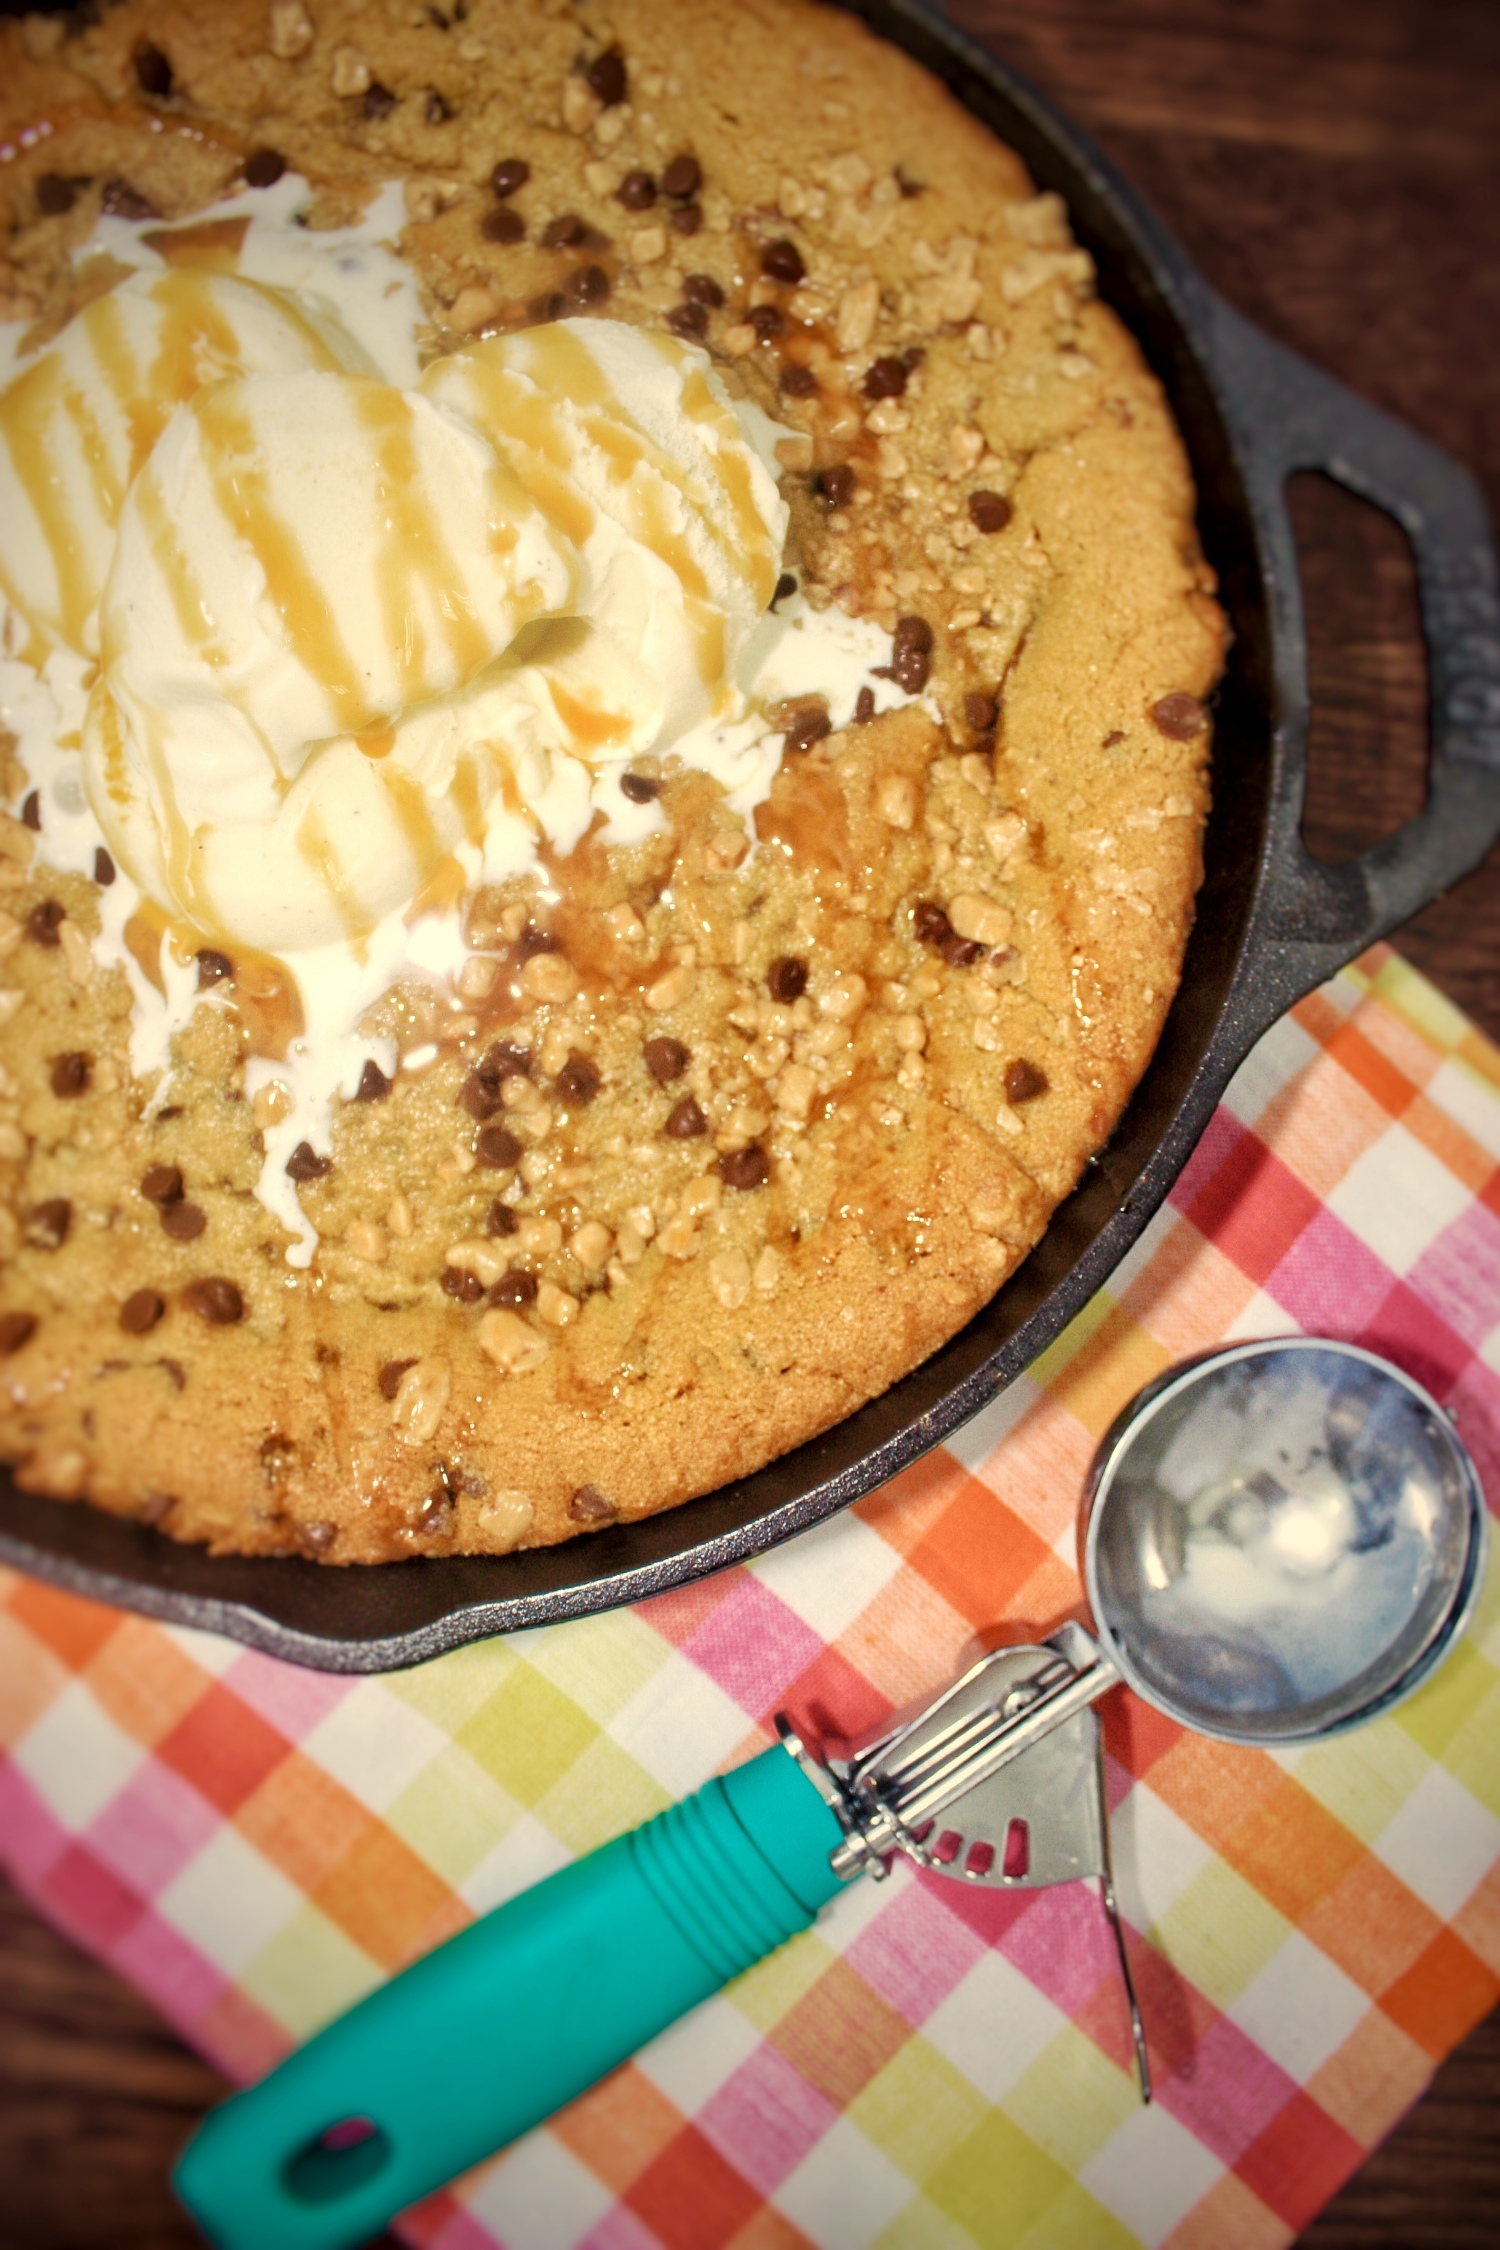 Toffee-skillet-cookie-recipe